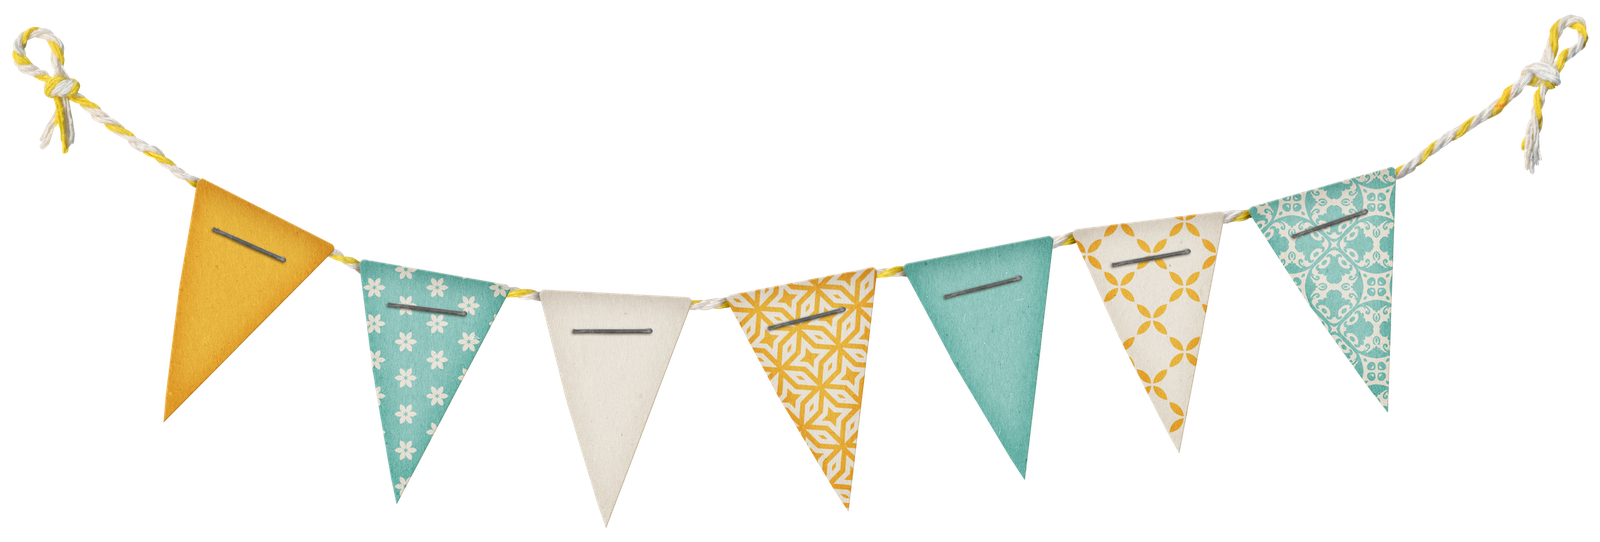 Halloween pennant banner clipart clip library download Party Flags Party Pennant Bunting, Bunting Flags Royalty Free ... clip library download